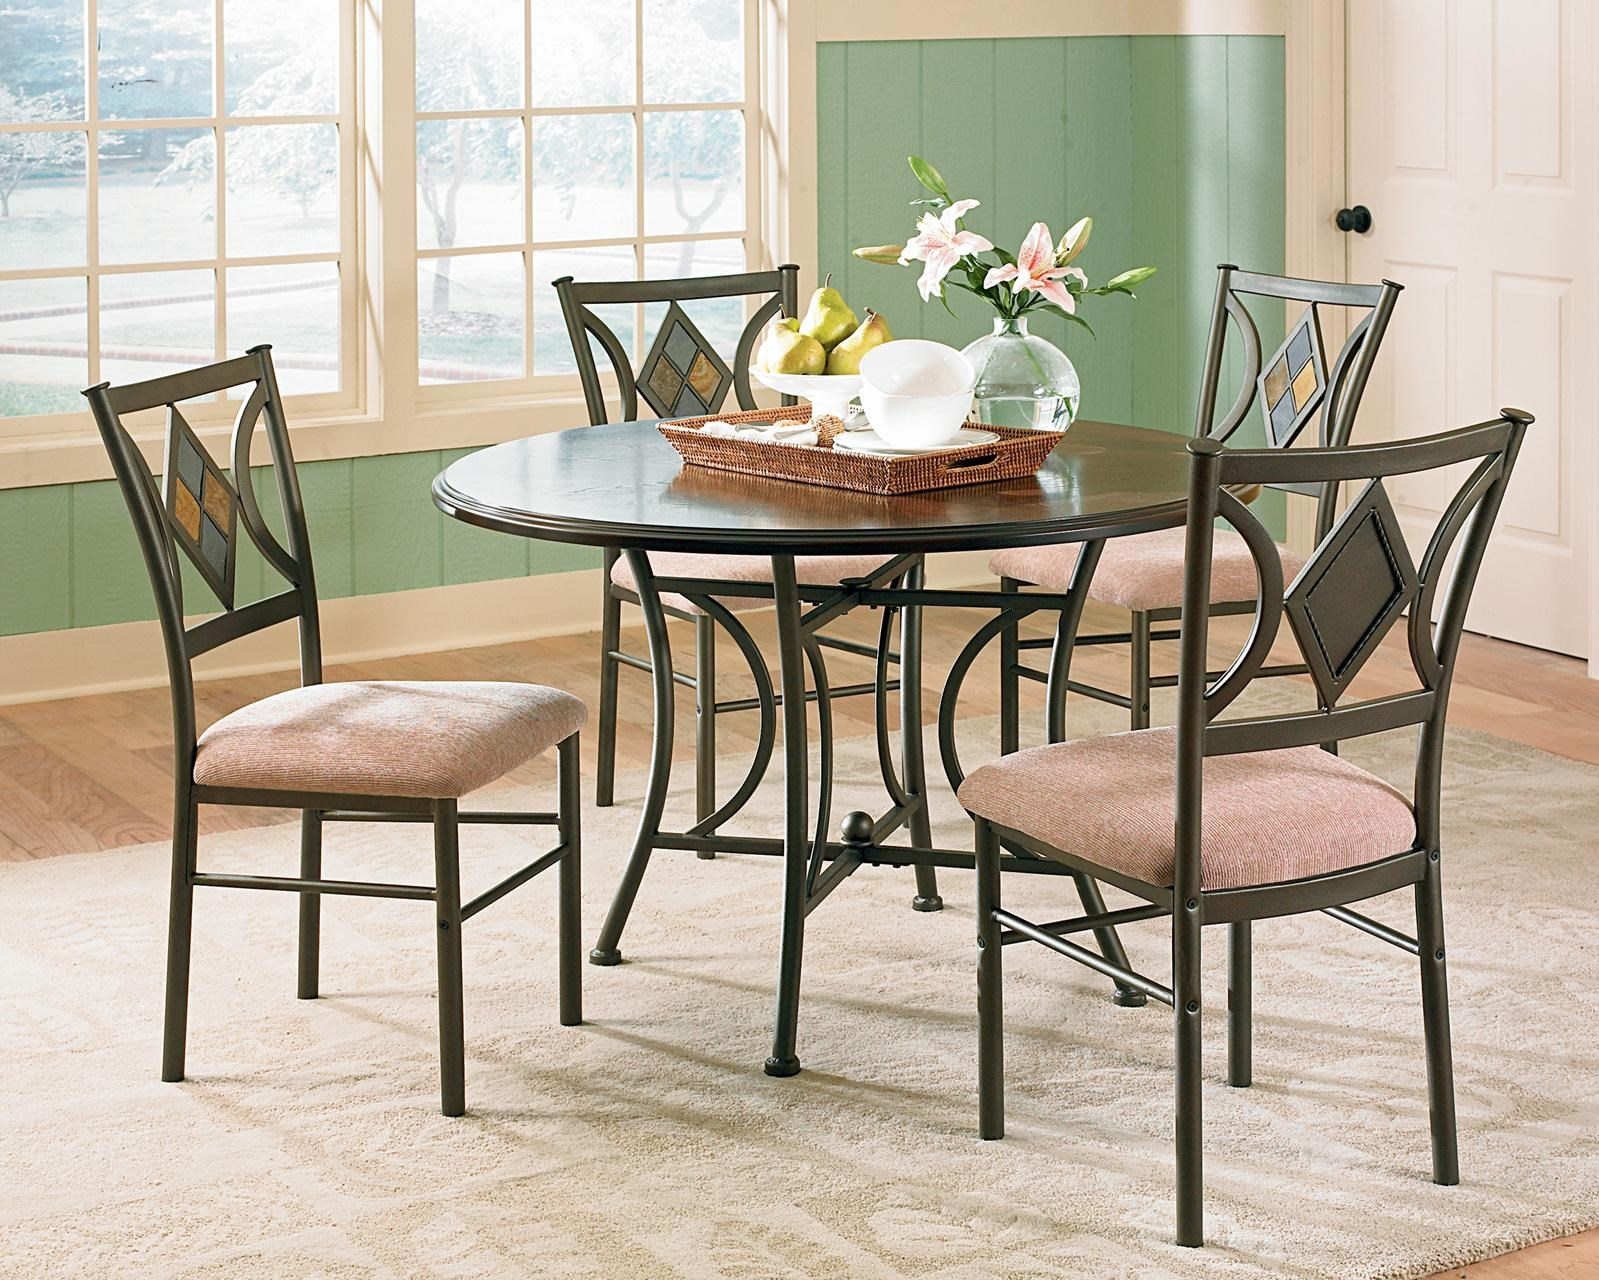 Star Ta a 5 Piece Casual Round Pedestal Table & Side